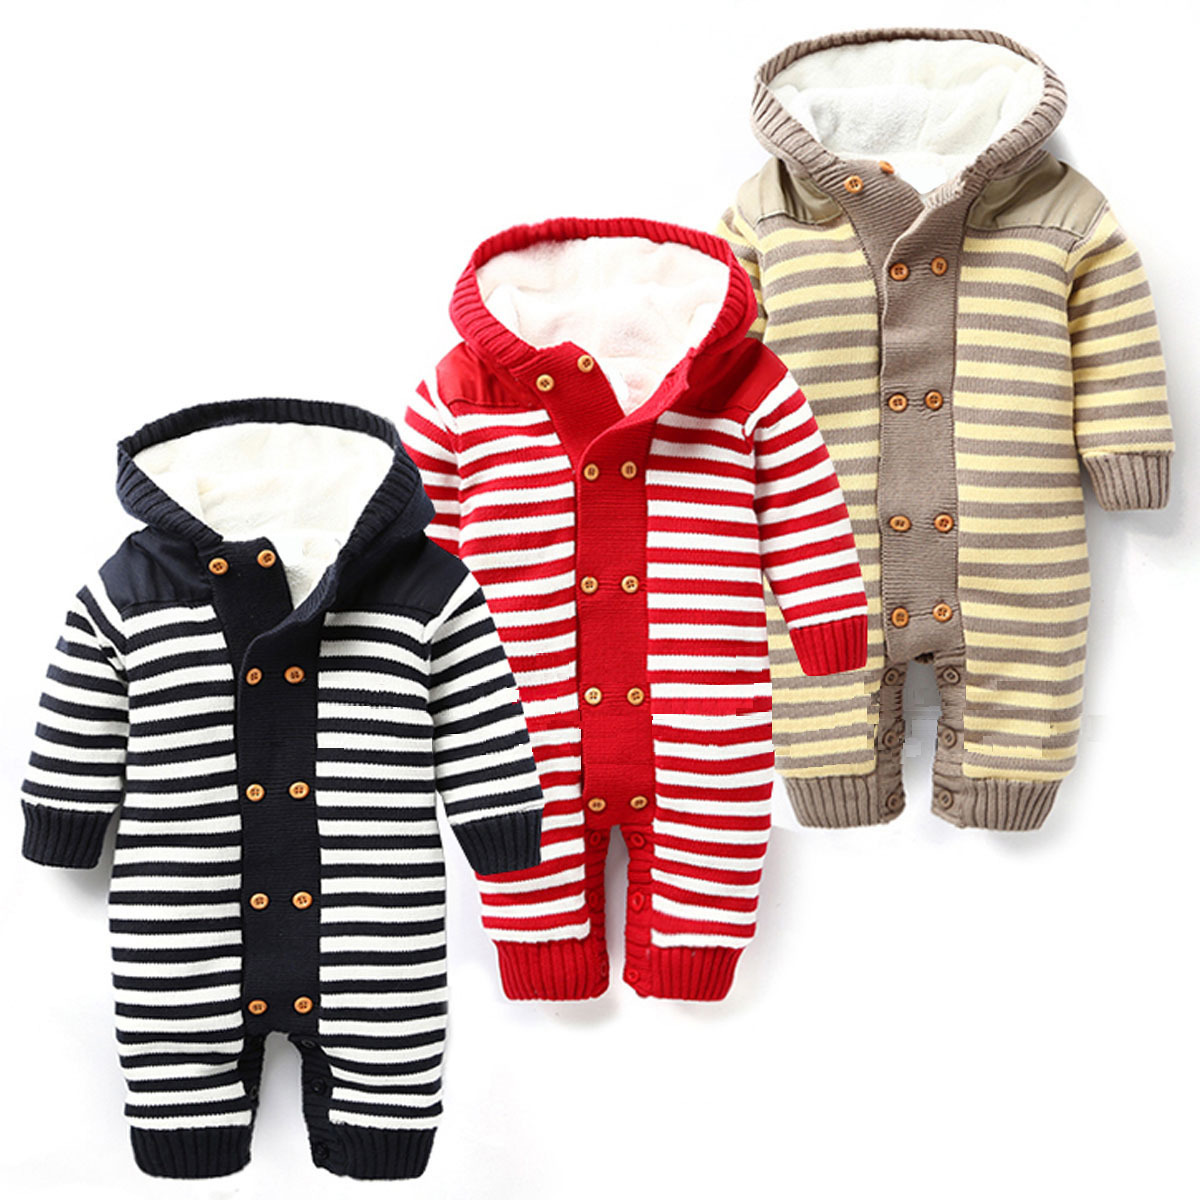 Newborn Autumn Winter Baby Rompers Thickened Winter Striped Hooded Knitted Sweater Warm Overalls Fleece Coat For Baby Girl Boy<br>